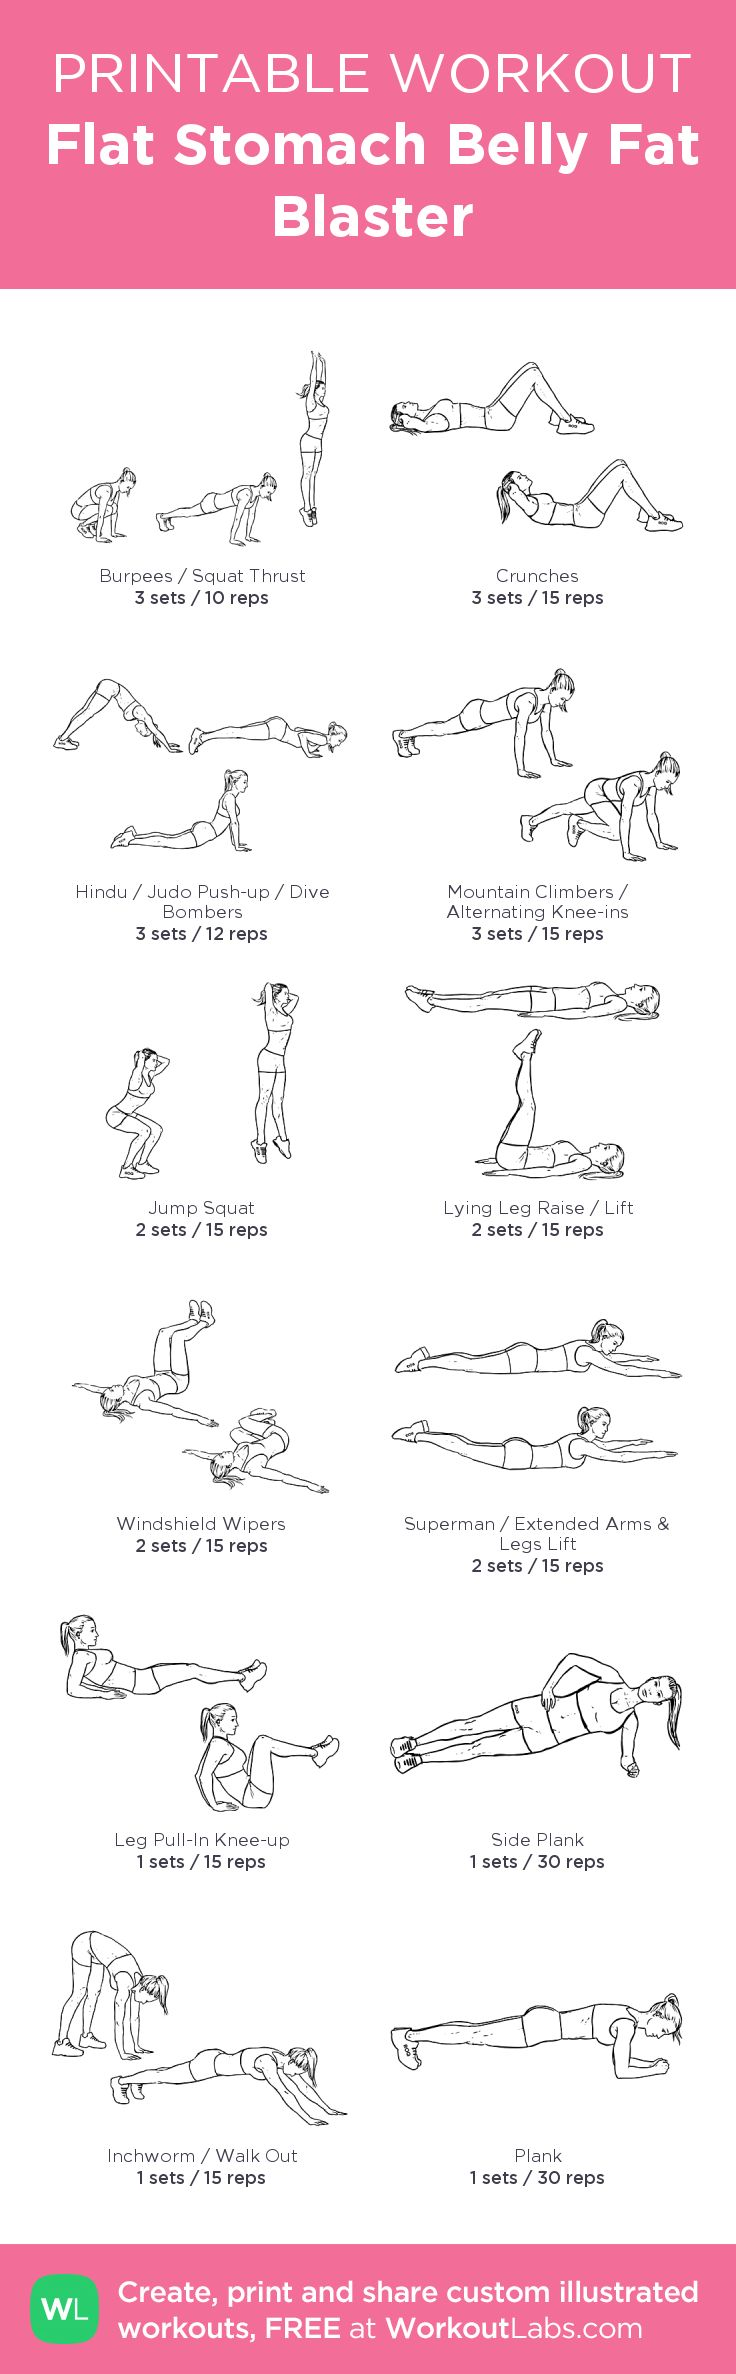 Free Flat Belly Exercises